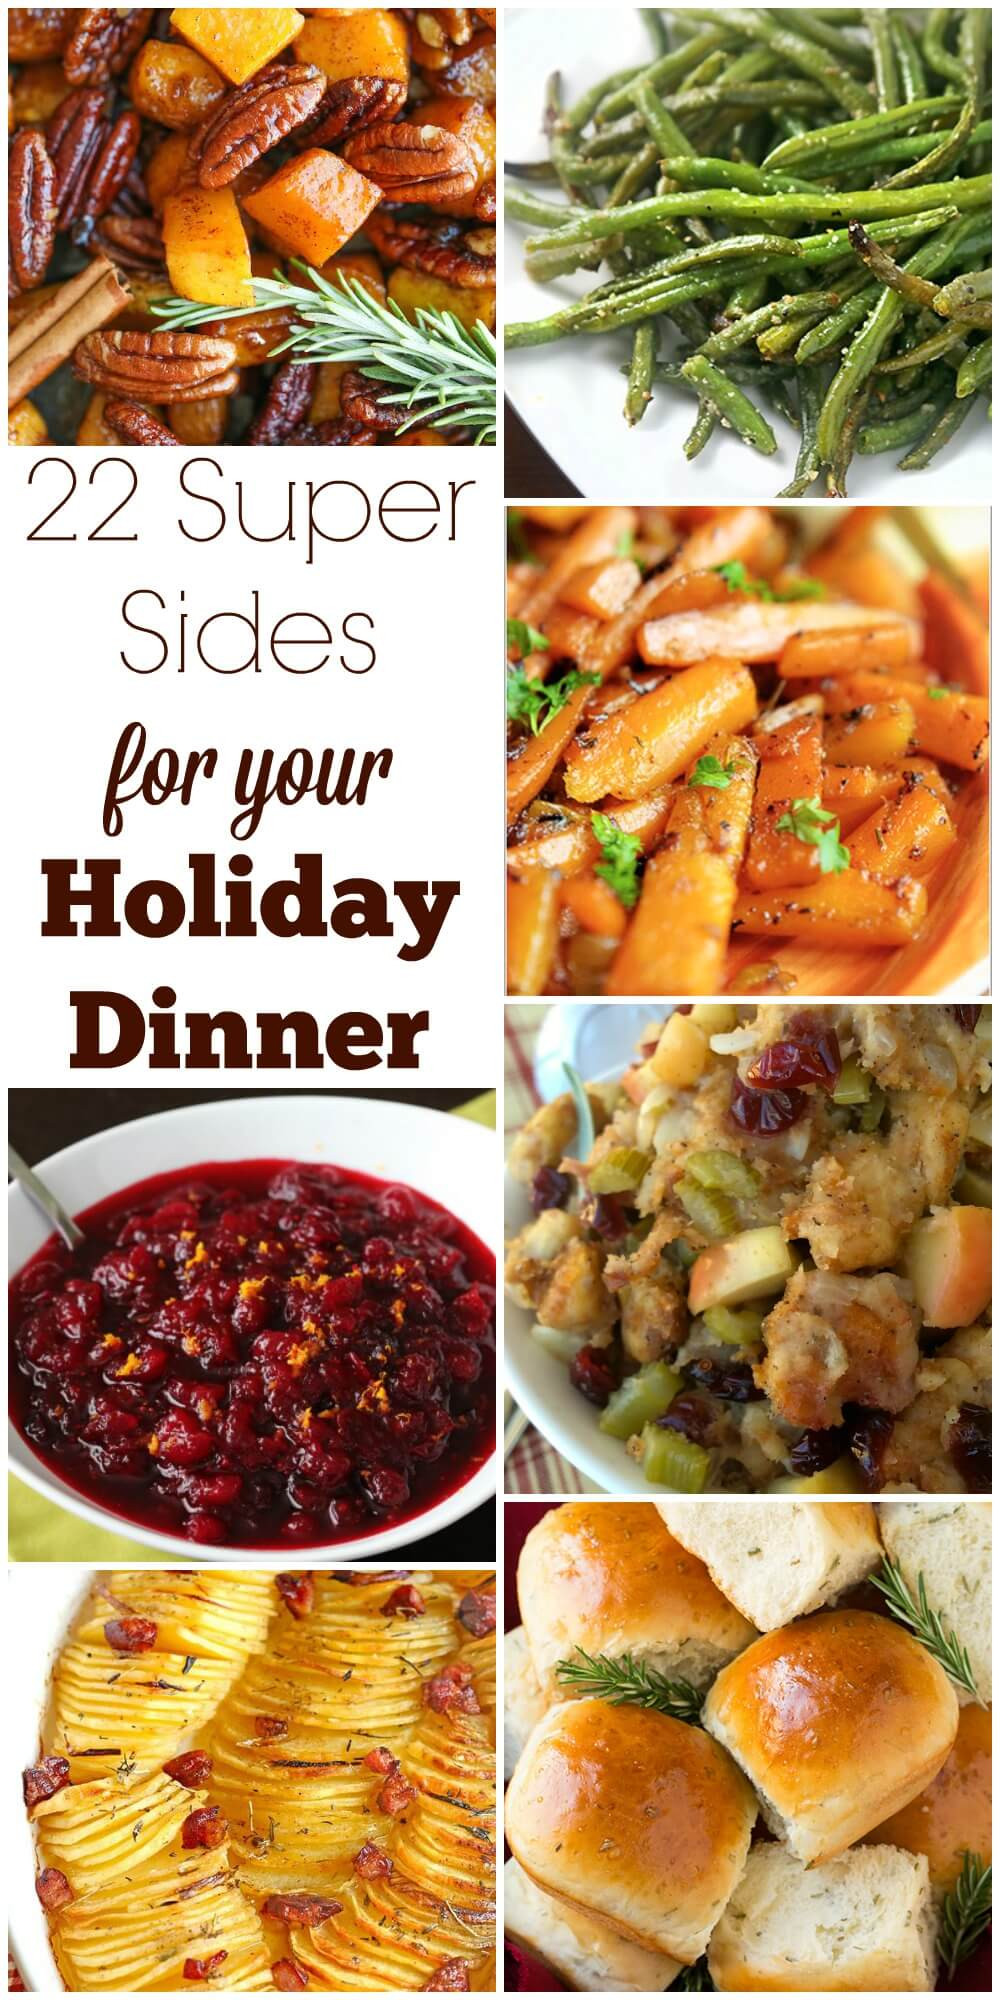 Best Side Dishes For Christmas Dinner  22 Super Sides for Your Holiday Dinner